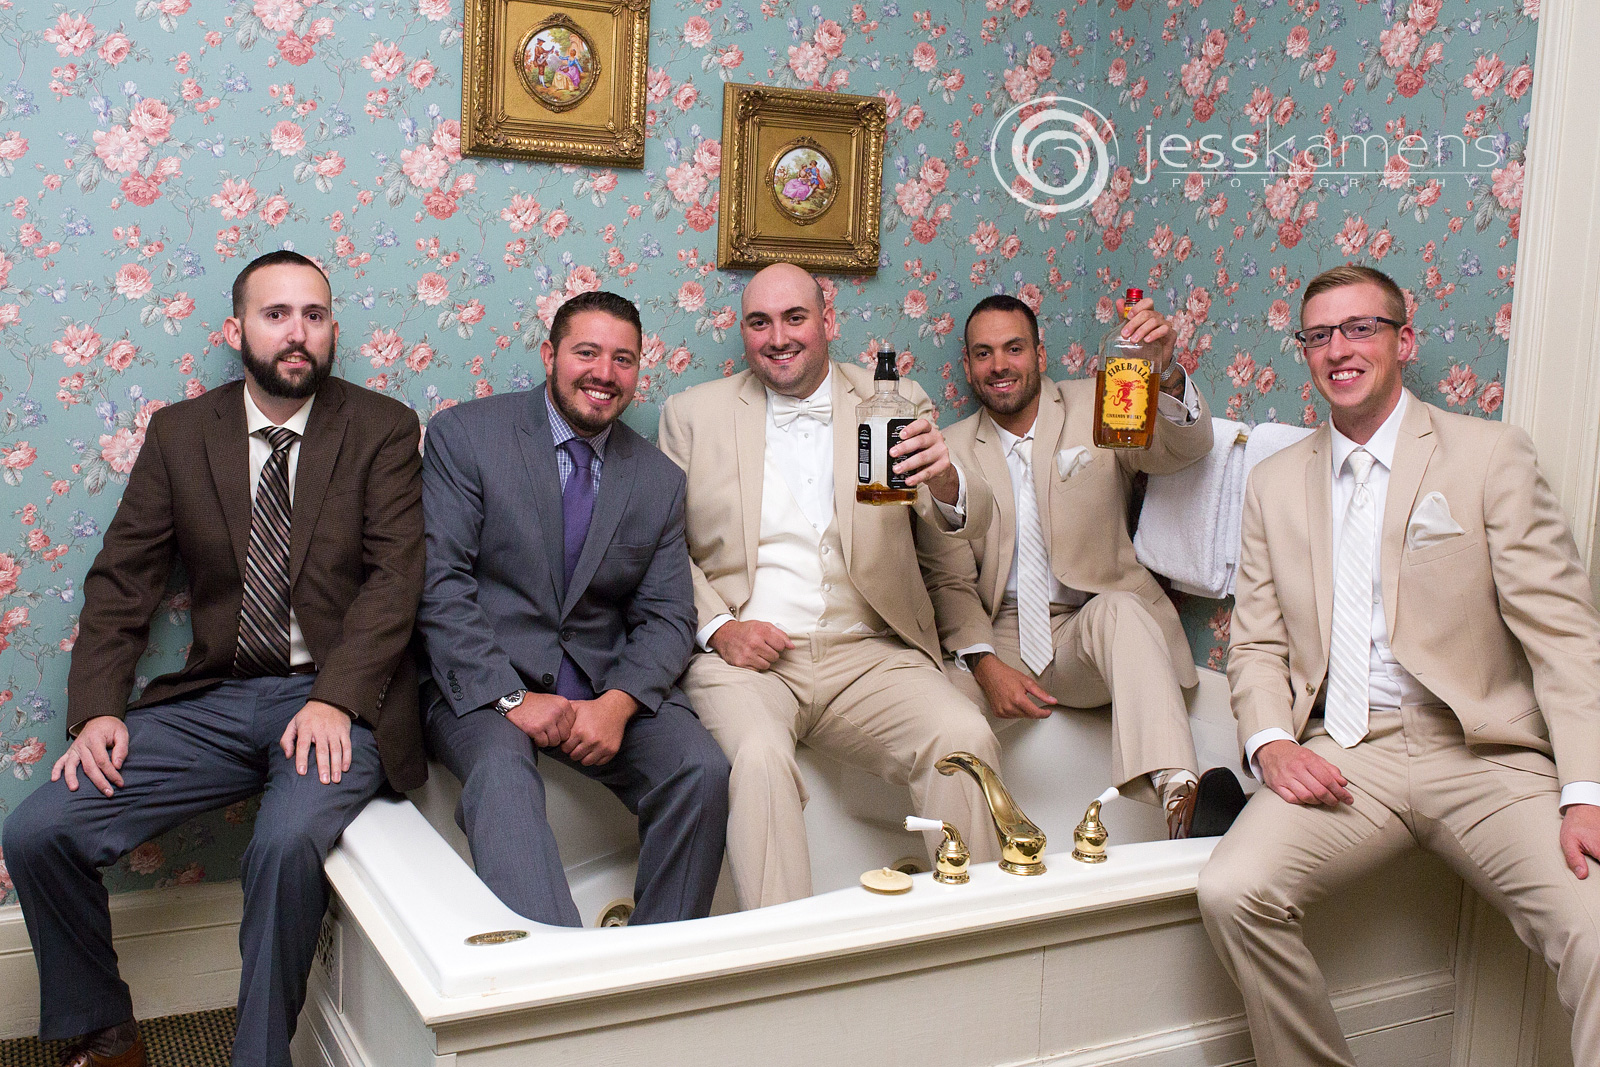 groomsmen sit in a bathtub